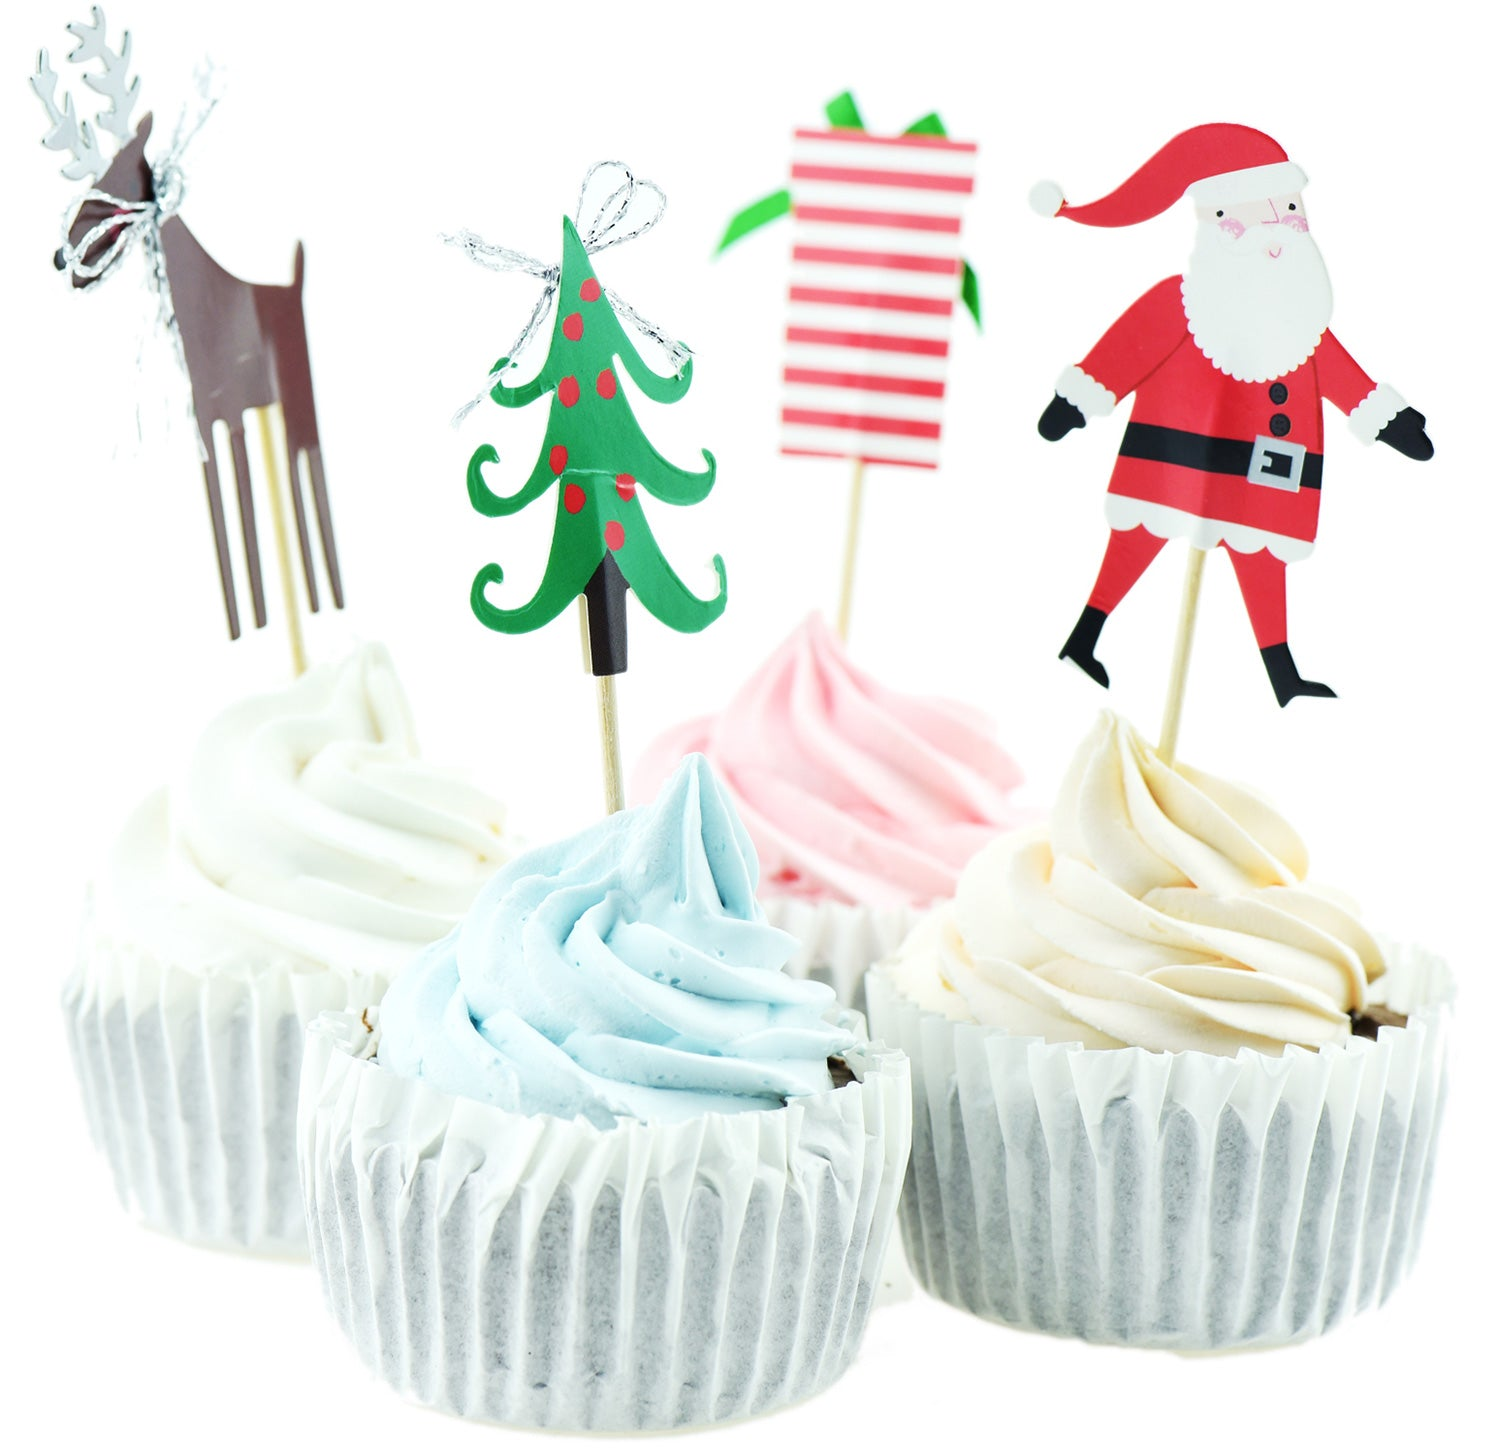 FiveSeasonStuff Christmas Themed (Santa Claus, Reindeer, Gift Box, Christmas Tree) Cake Toppers Sticks Toothpicks Decorations for Sandwiches Canopes Appetisers Muffins Cupcakes Cakes Desserts etc